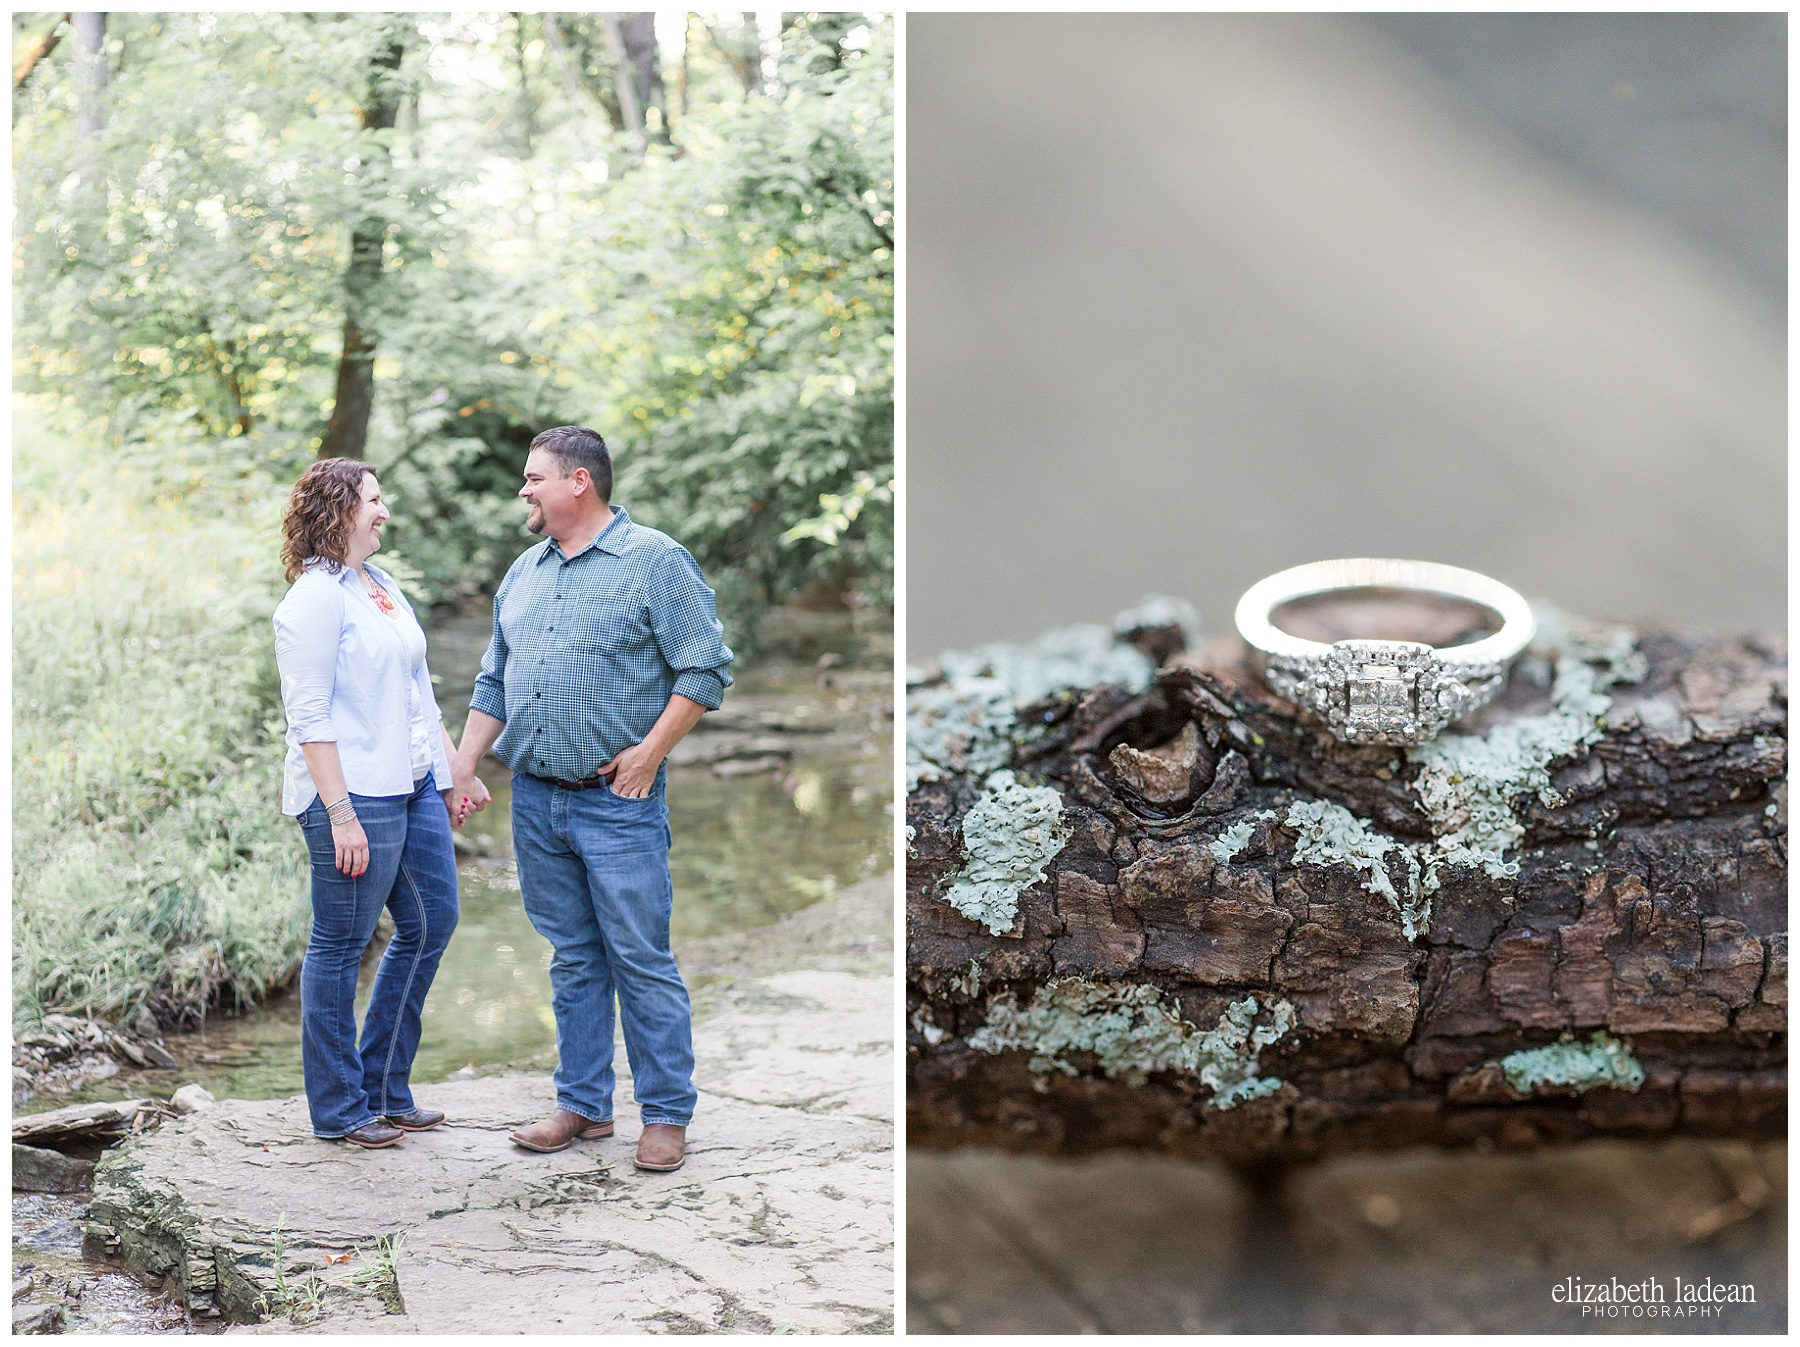 Kansas-City-Engagement-Photography-Shawnee-Mission-H+JJ2017-Elizabeth-Ladean-Photography-photo_1927.jpg